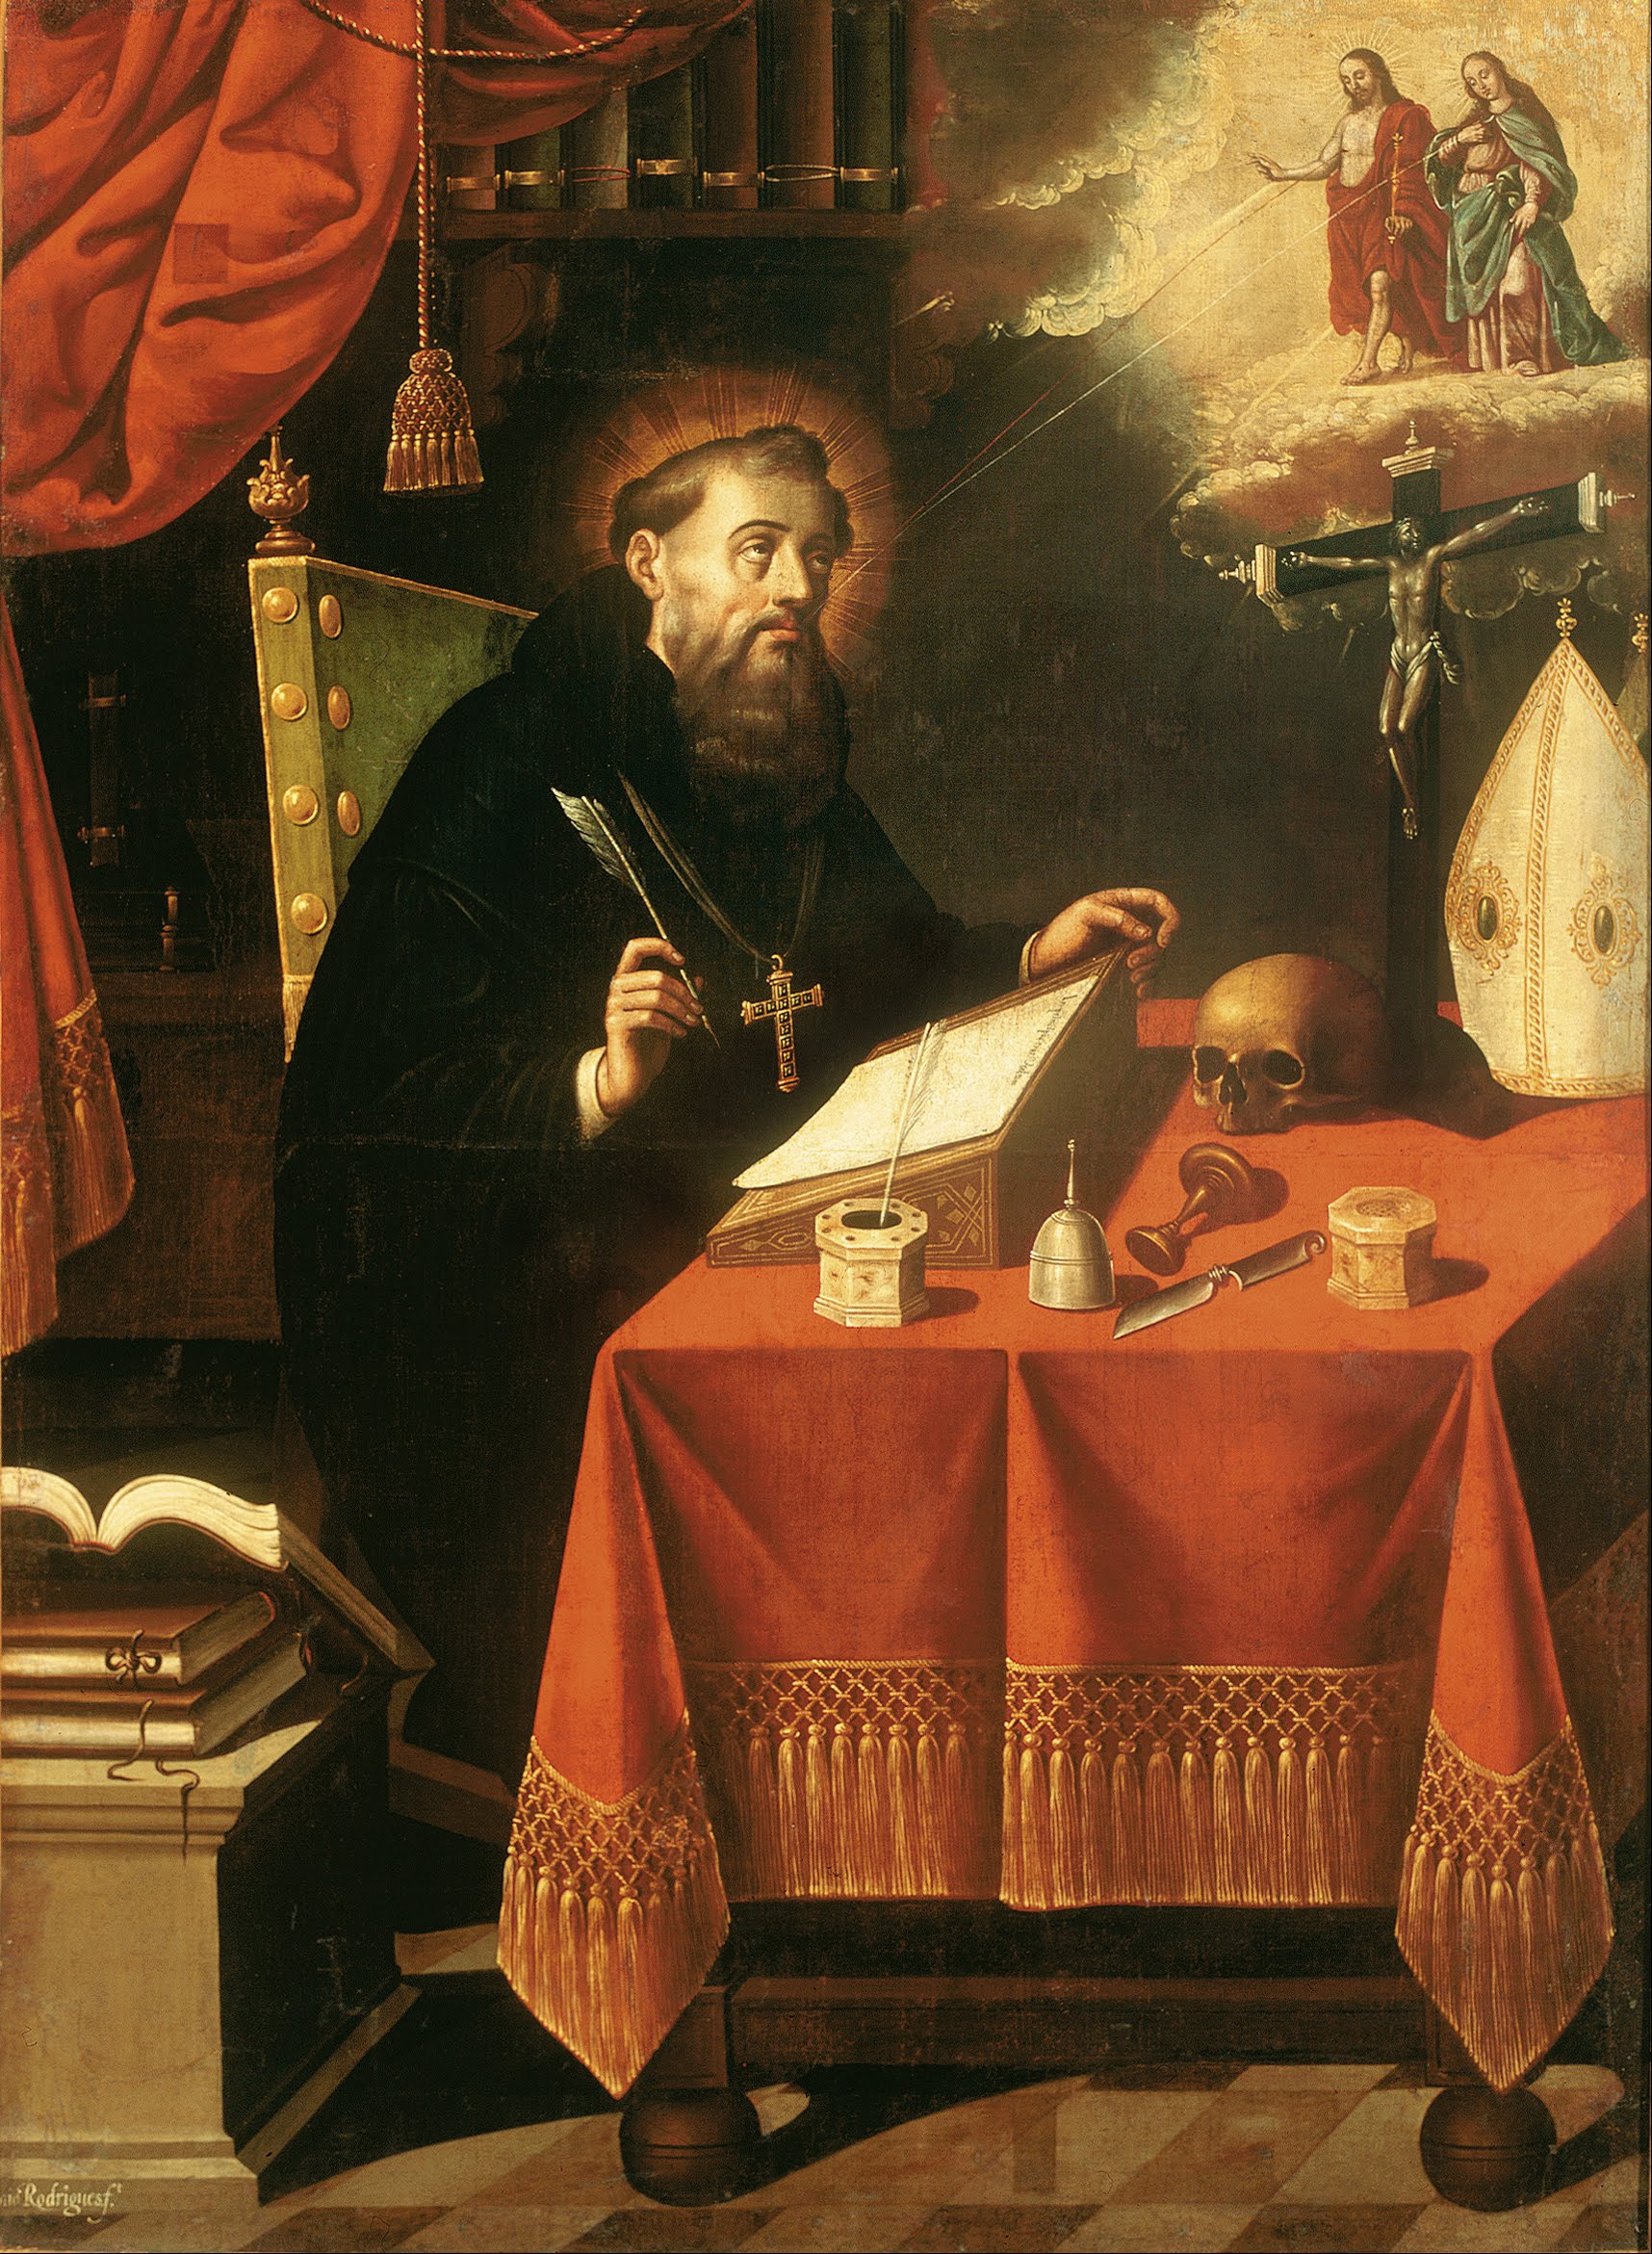 Painting of St. Augustine